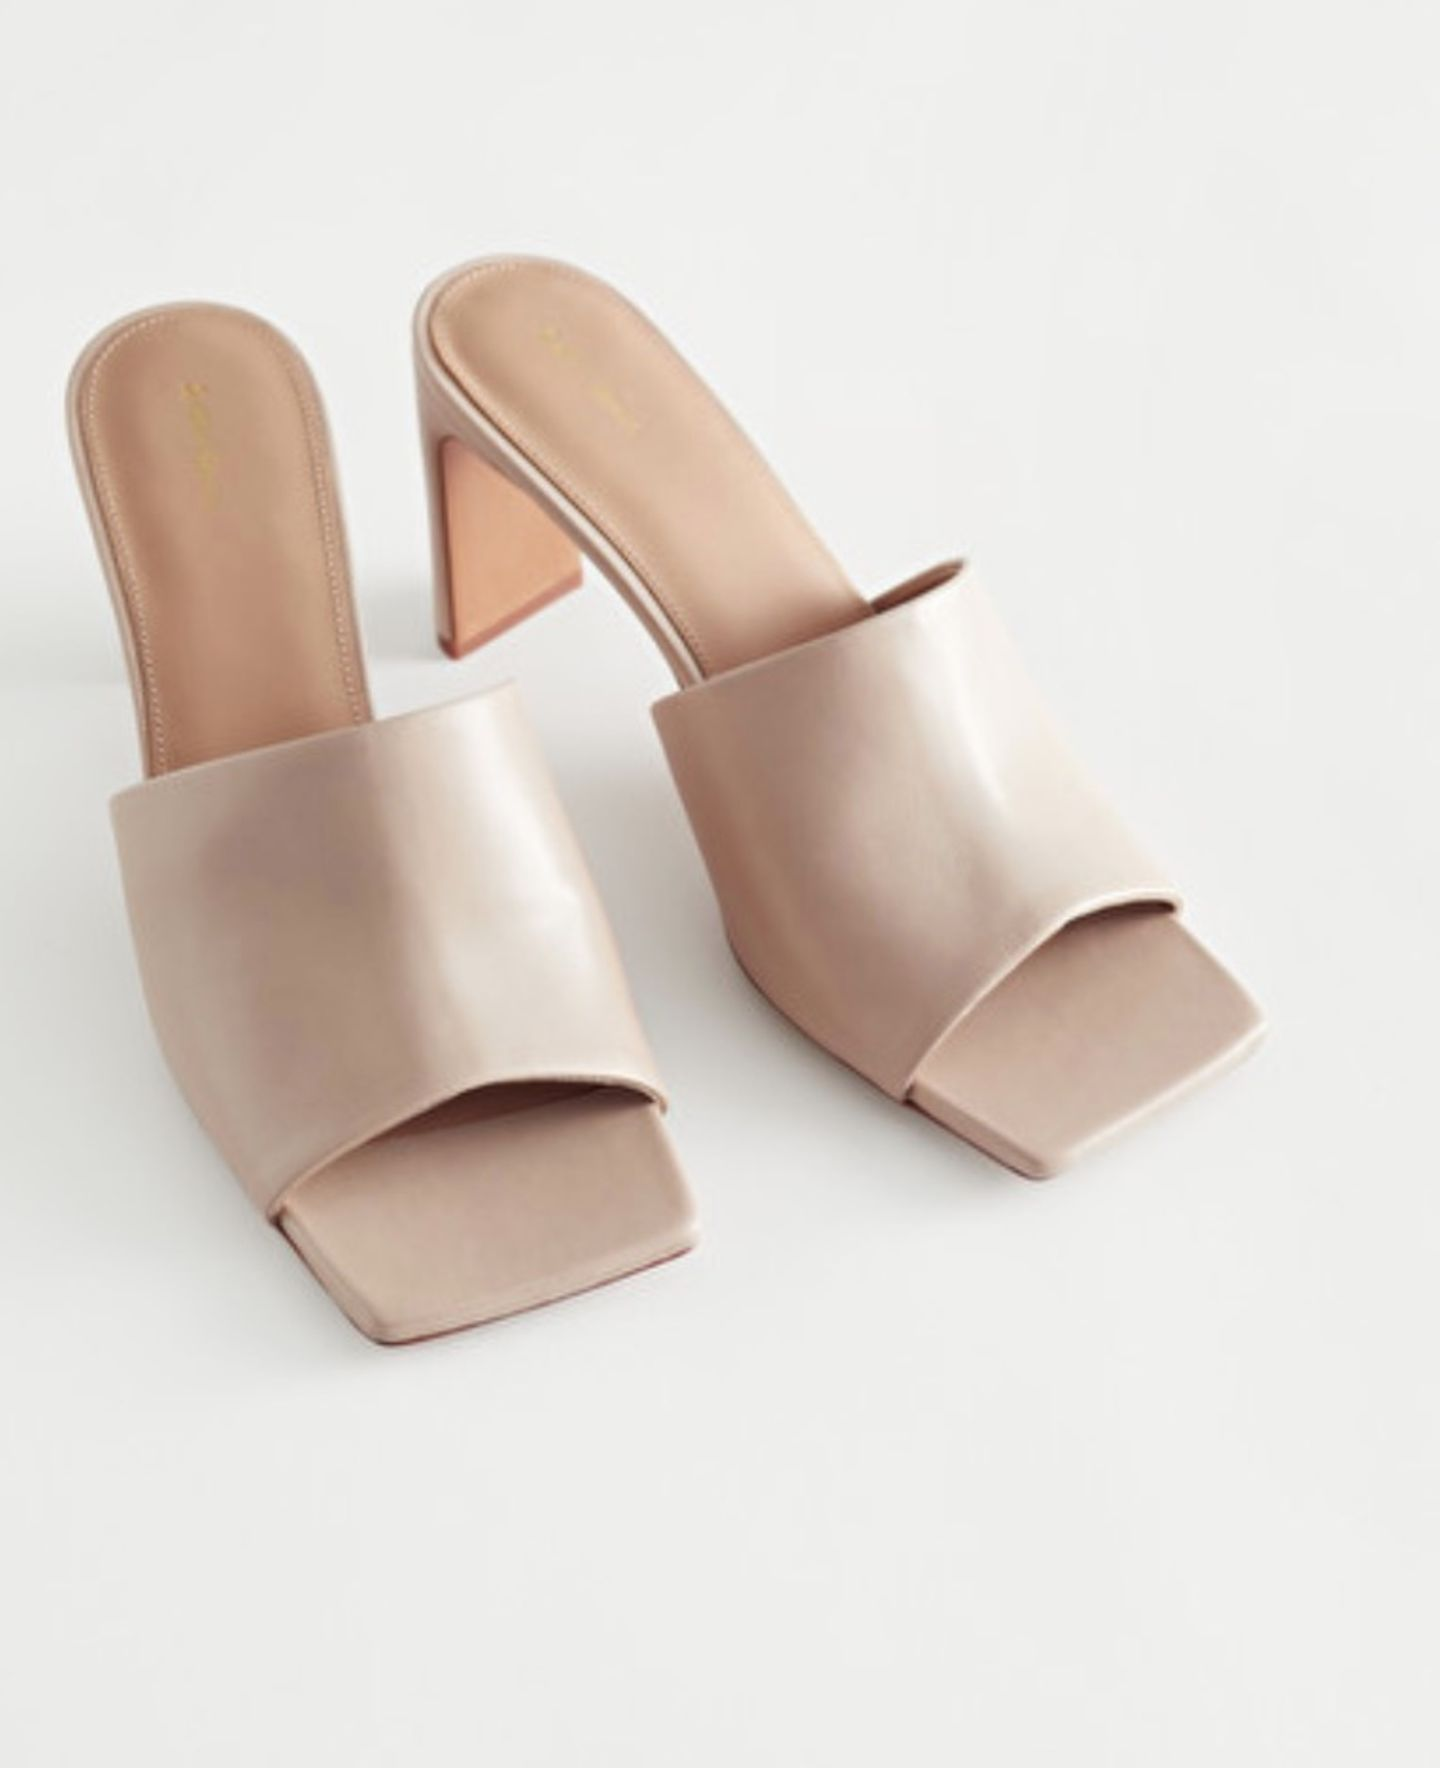 Sommerschuhe: Mules